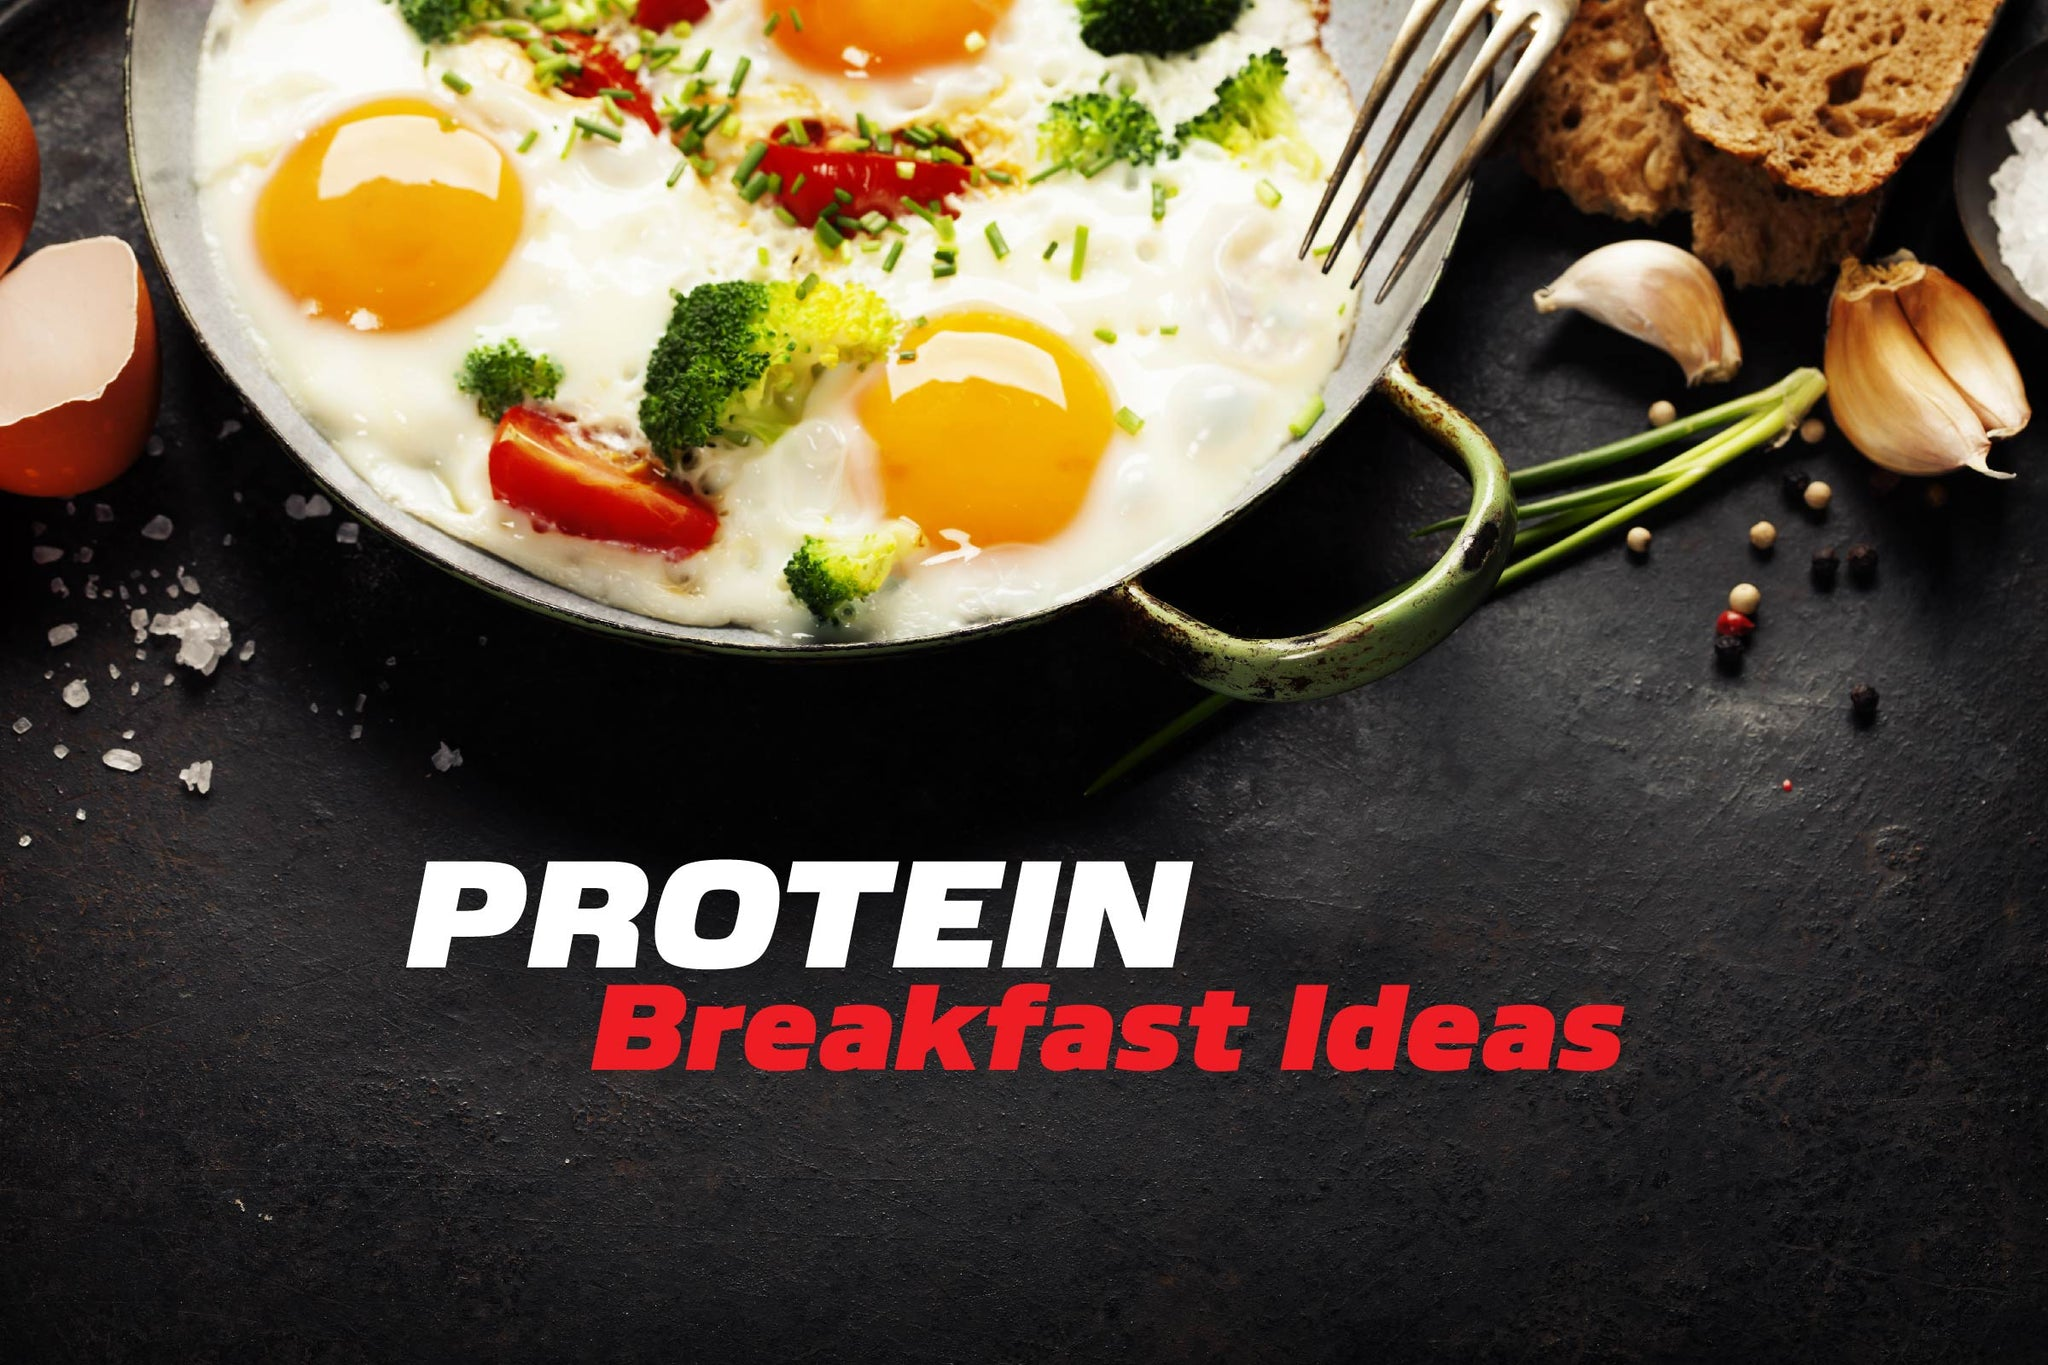 Healthy Protein Breakfast Ideas To Power You Through The Day